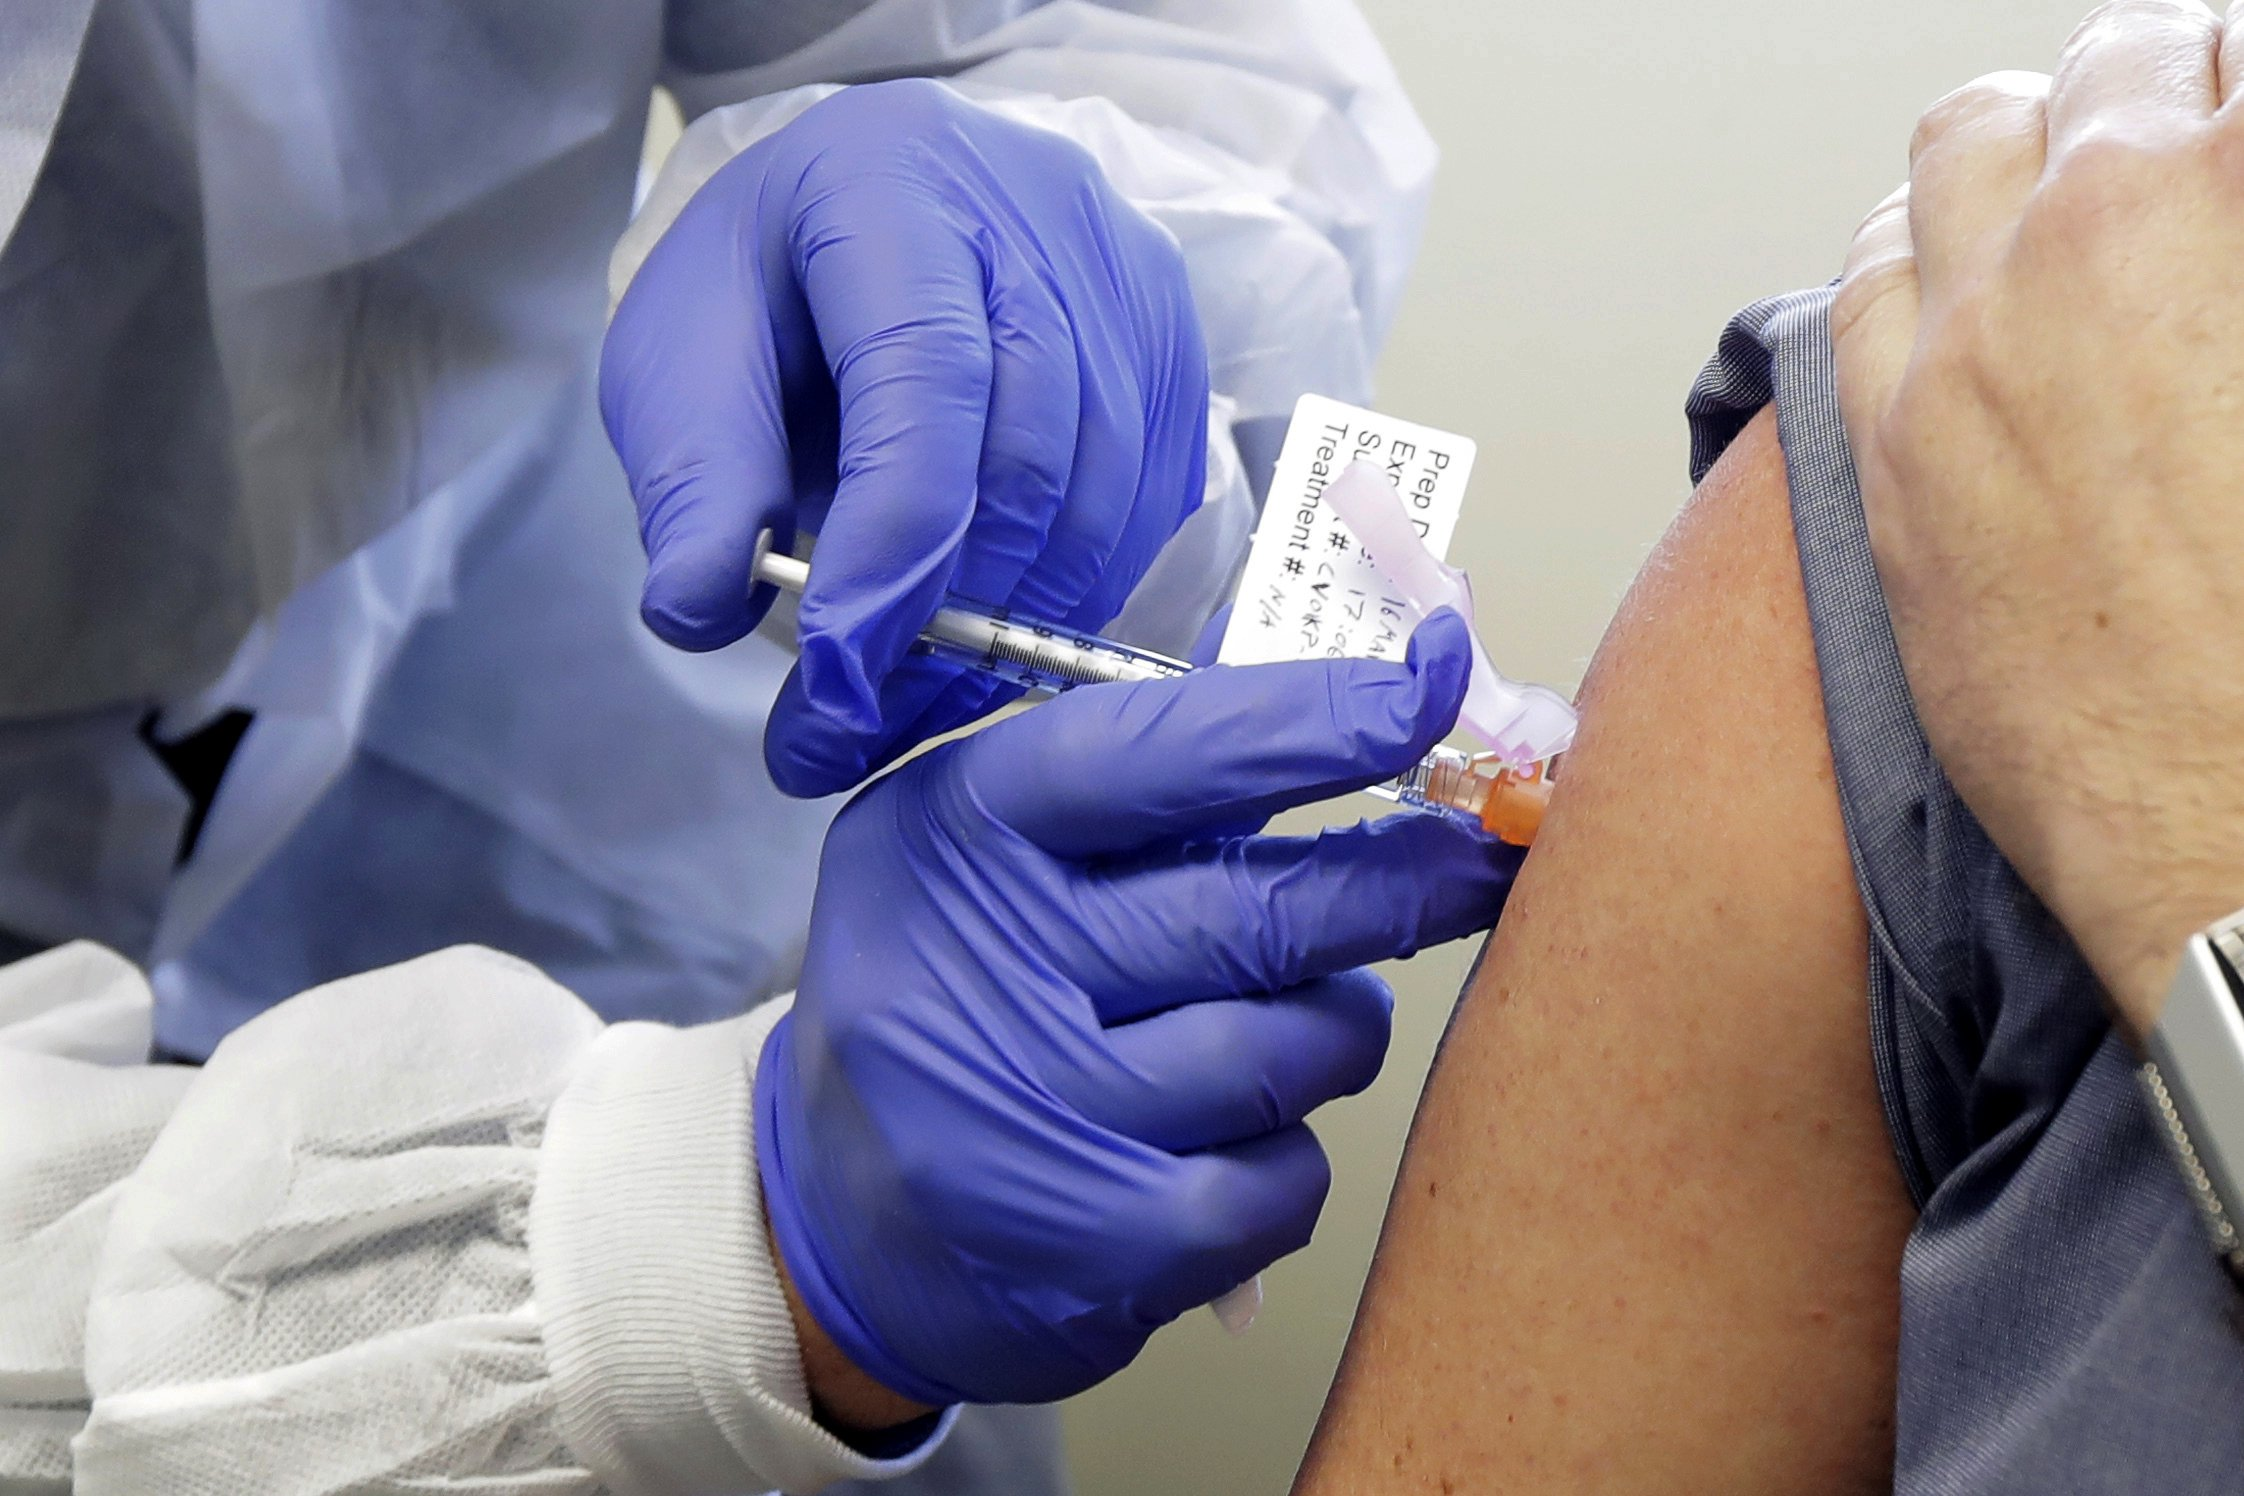 CDC panel meets Tuesday to vote on COVID-19 vaccine priority – The Associated Press